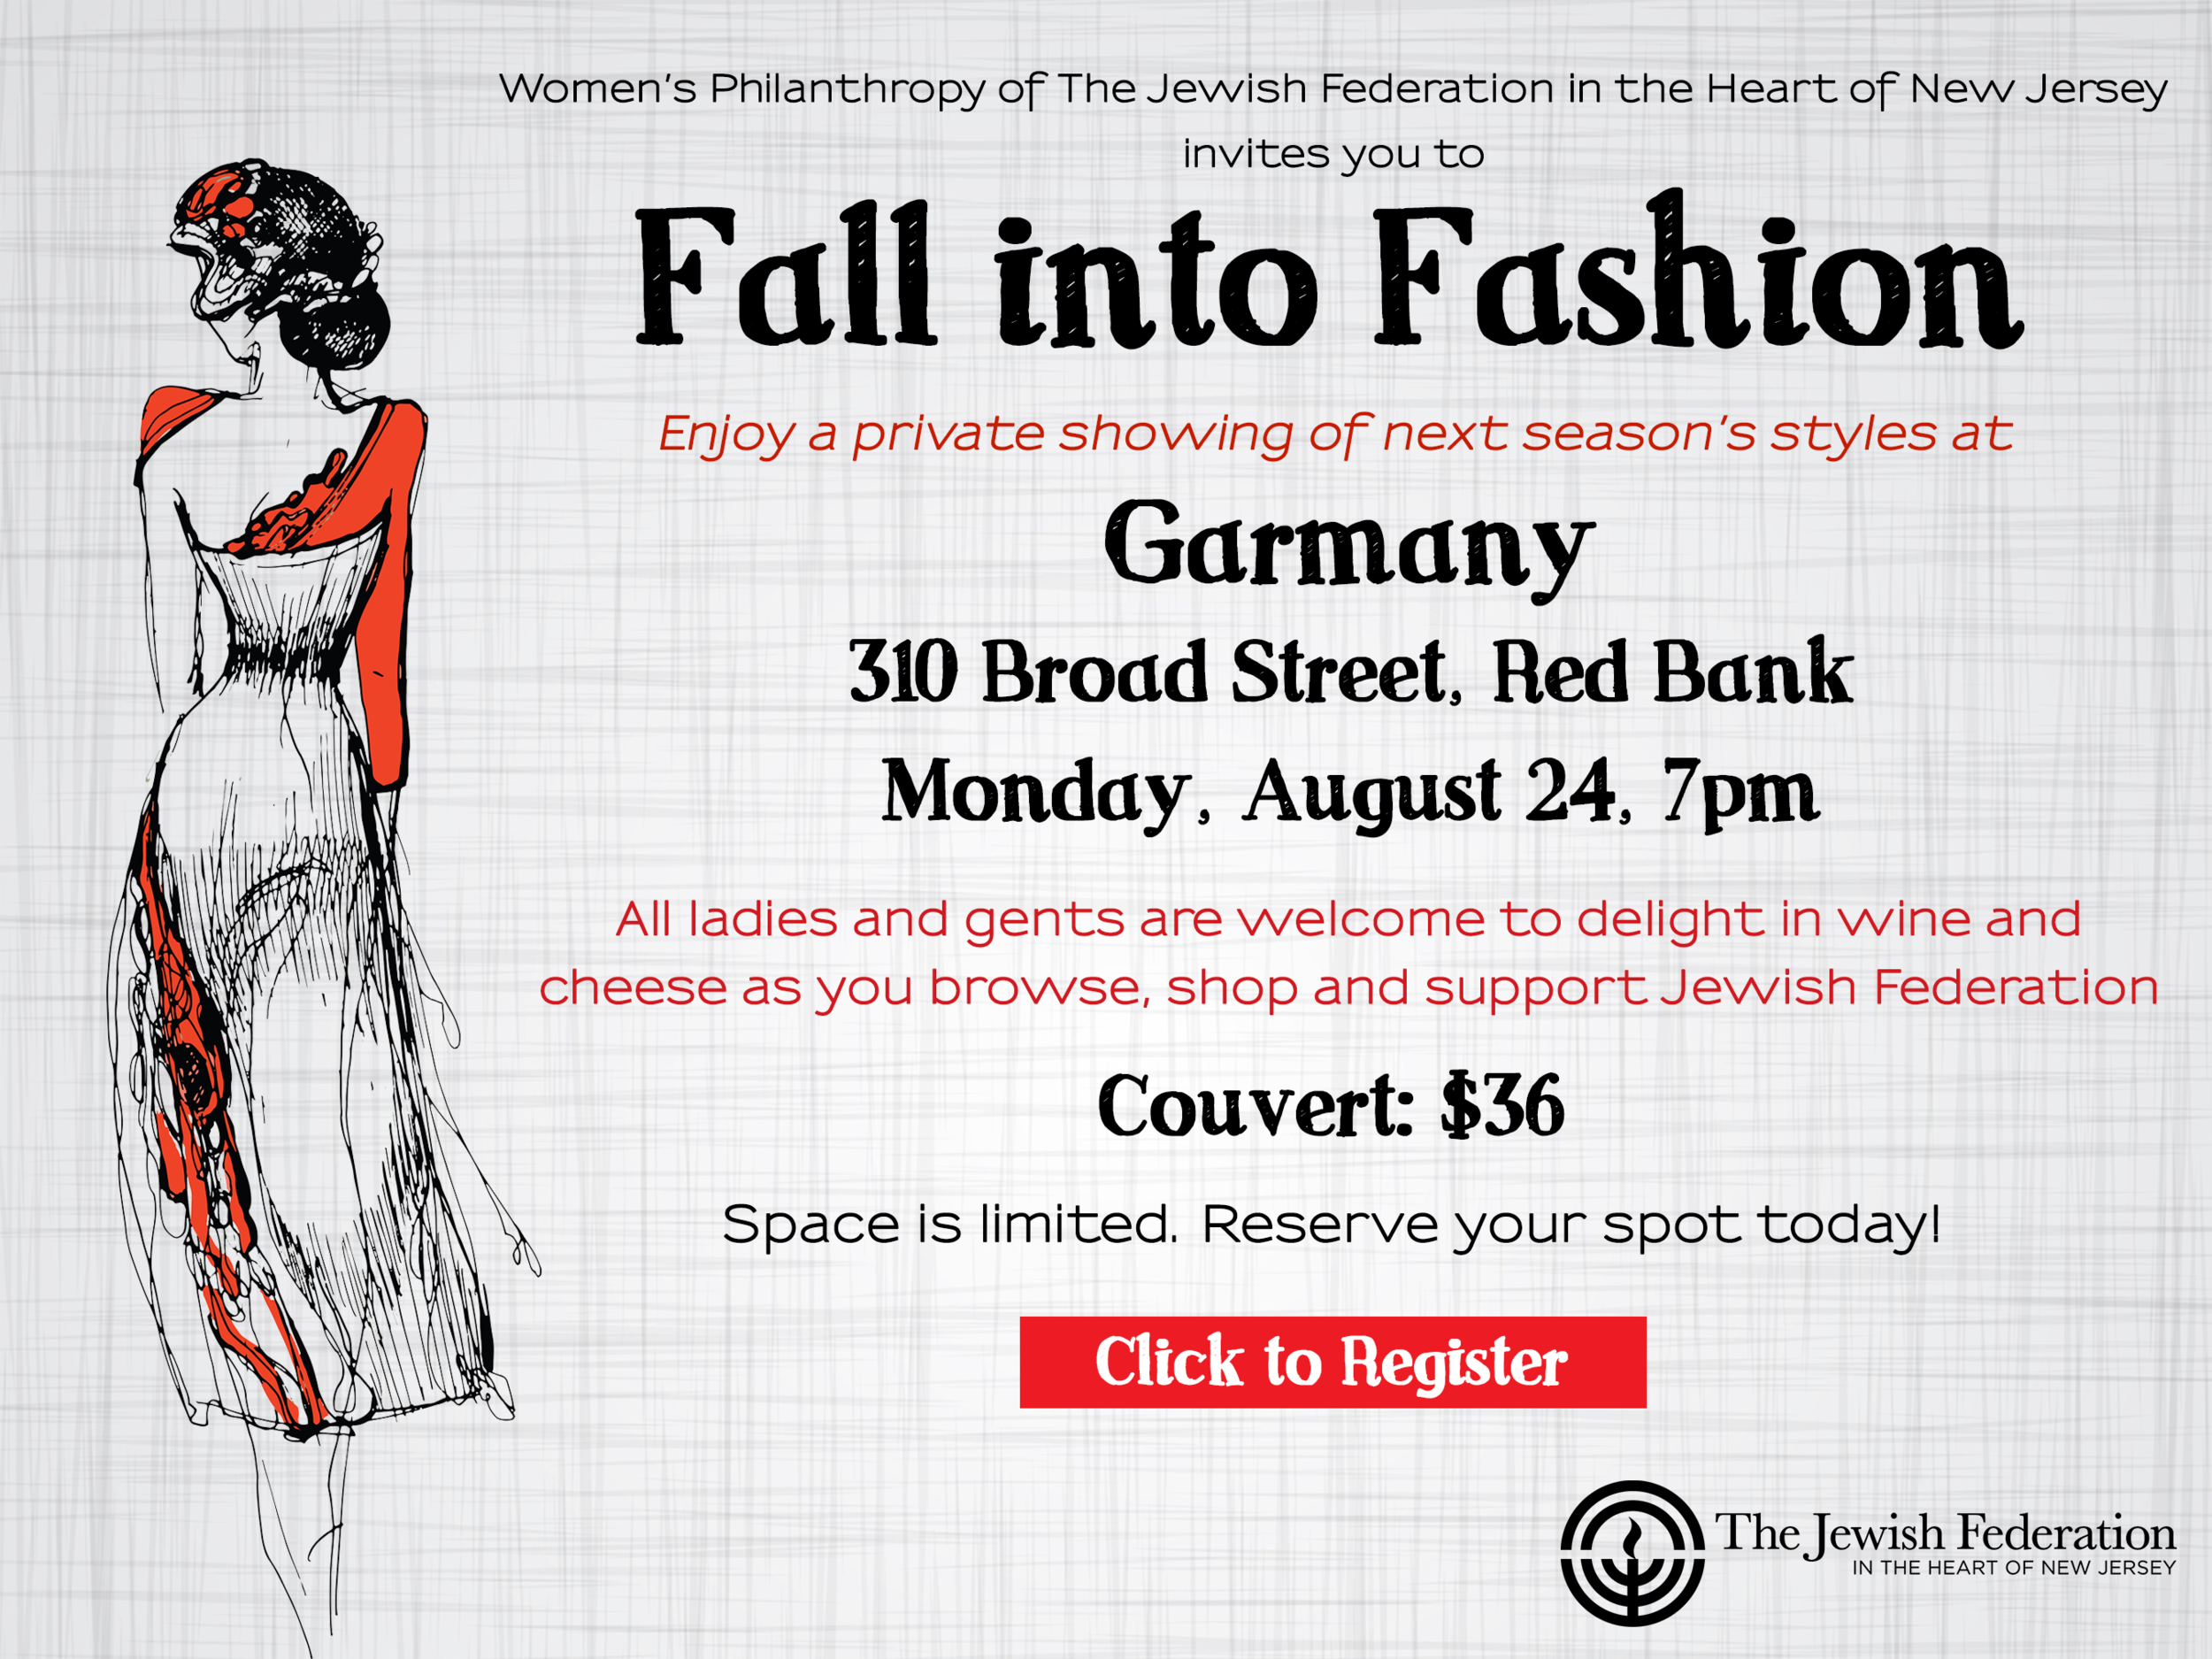 Fashion Show Invitation.png